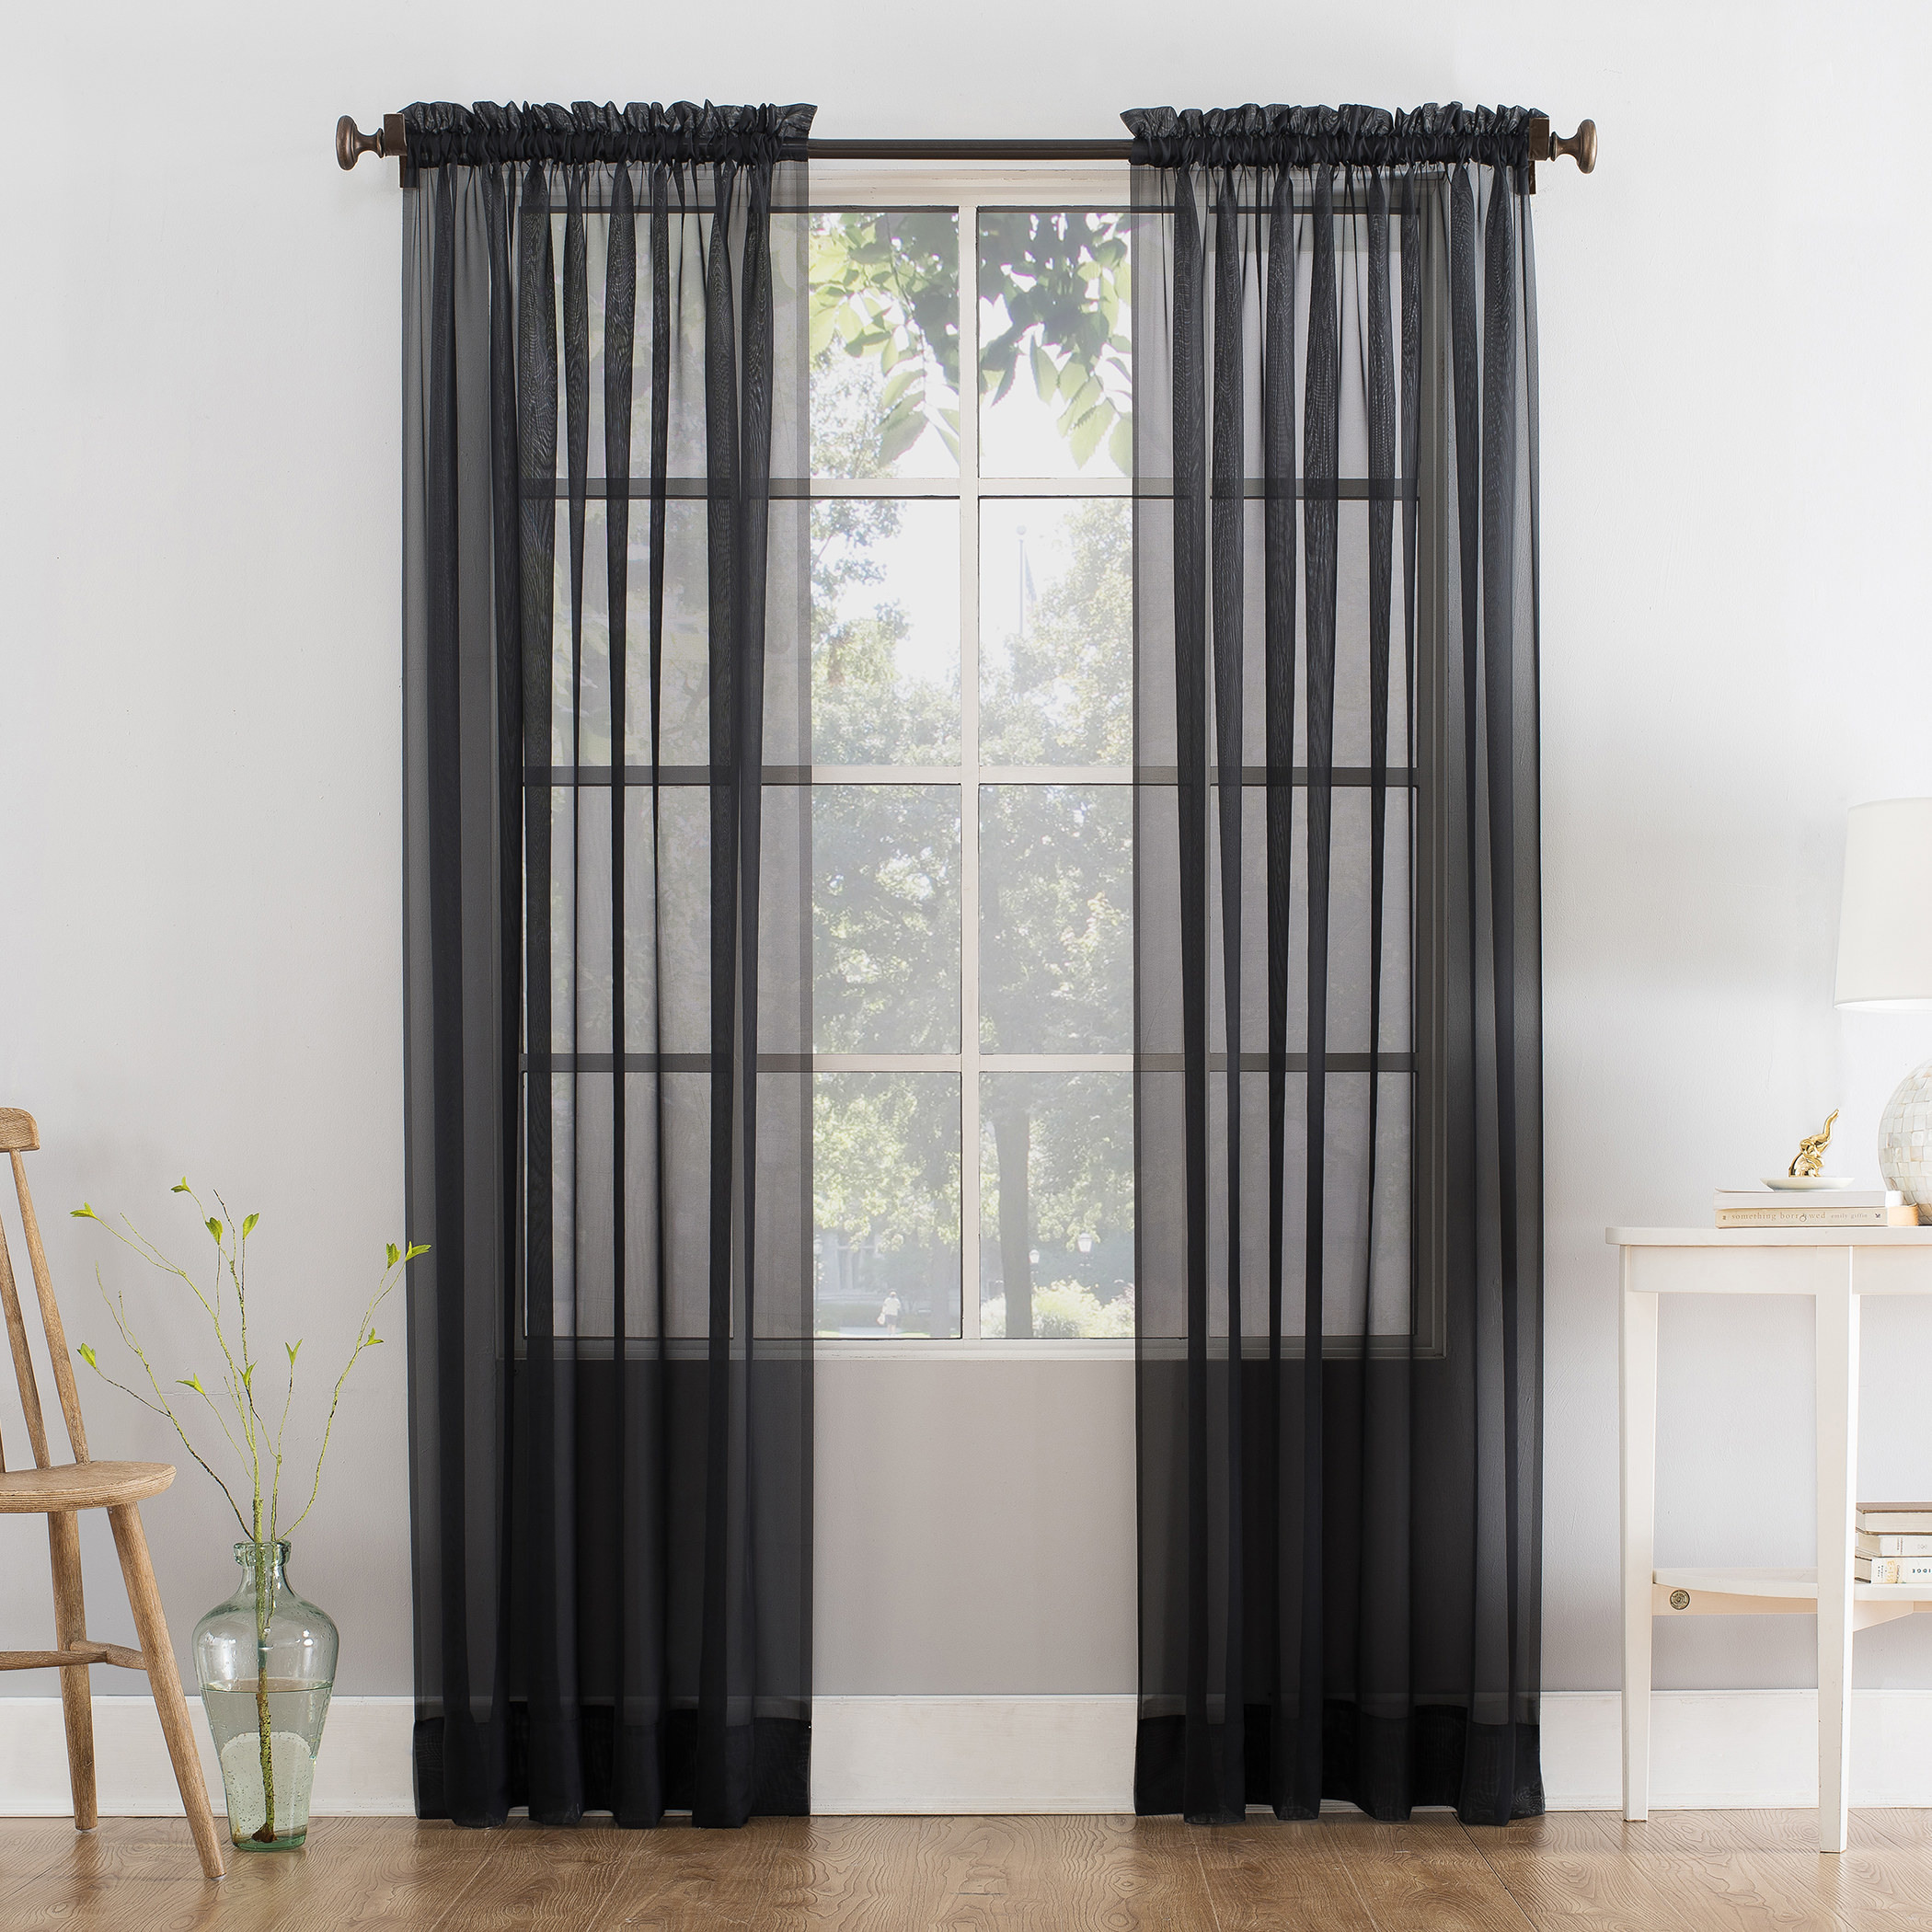 The curtains, which are sheer, in black